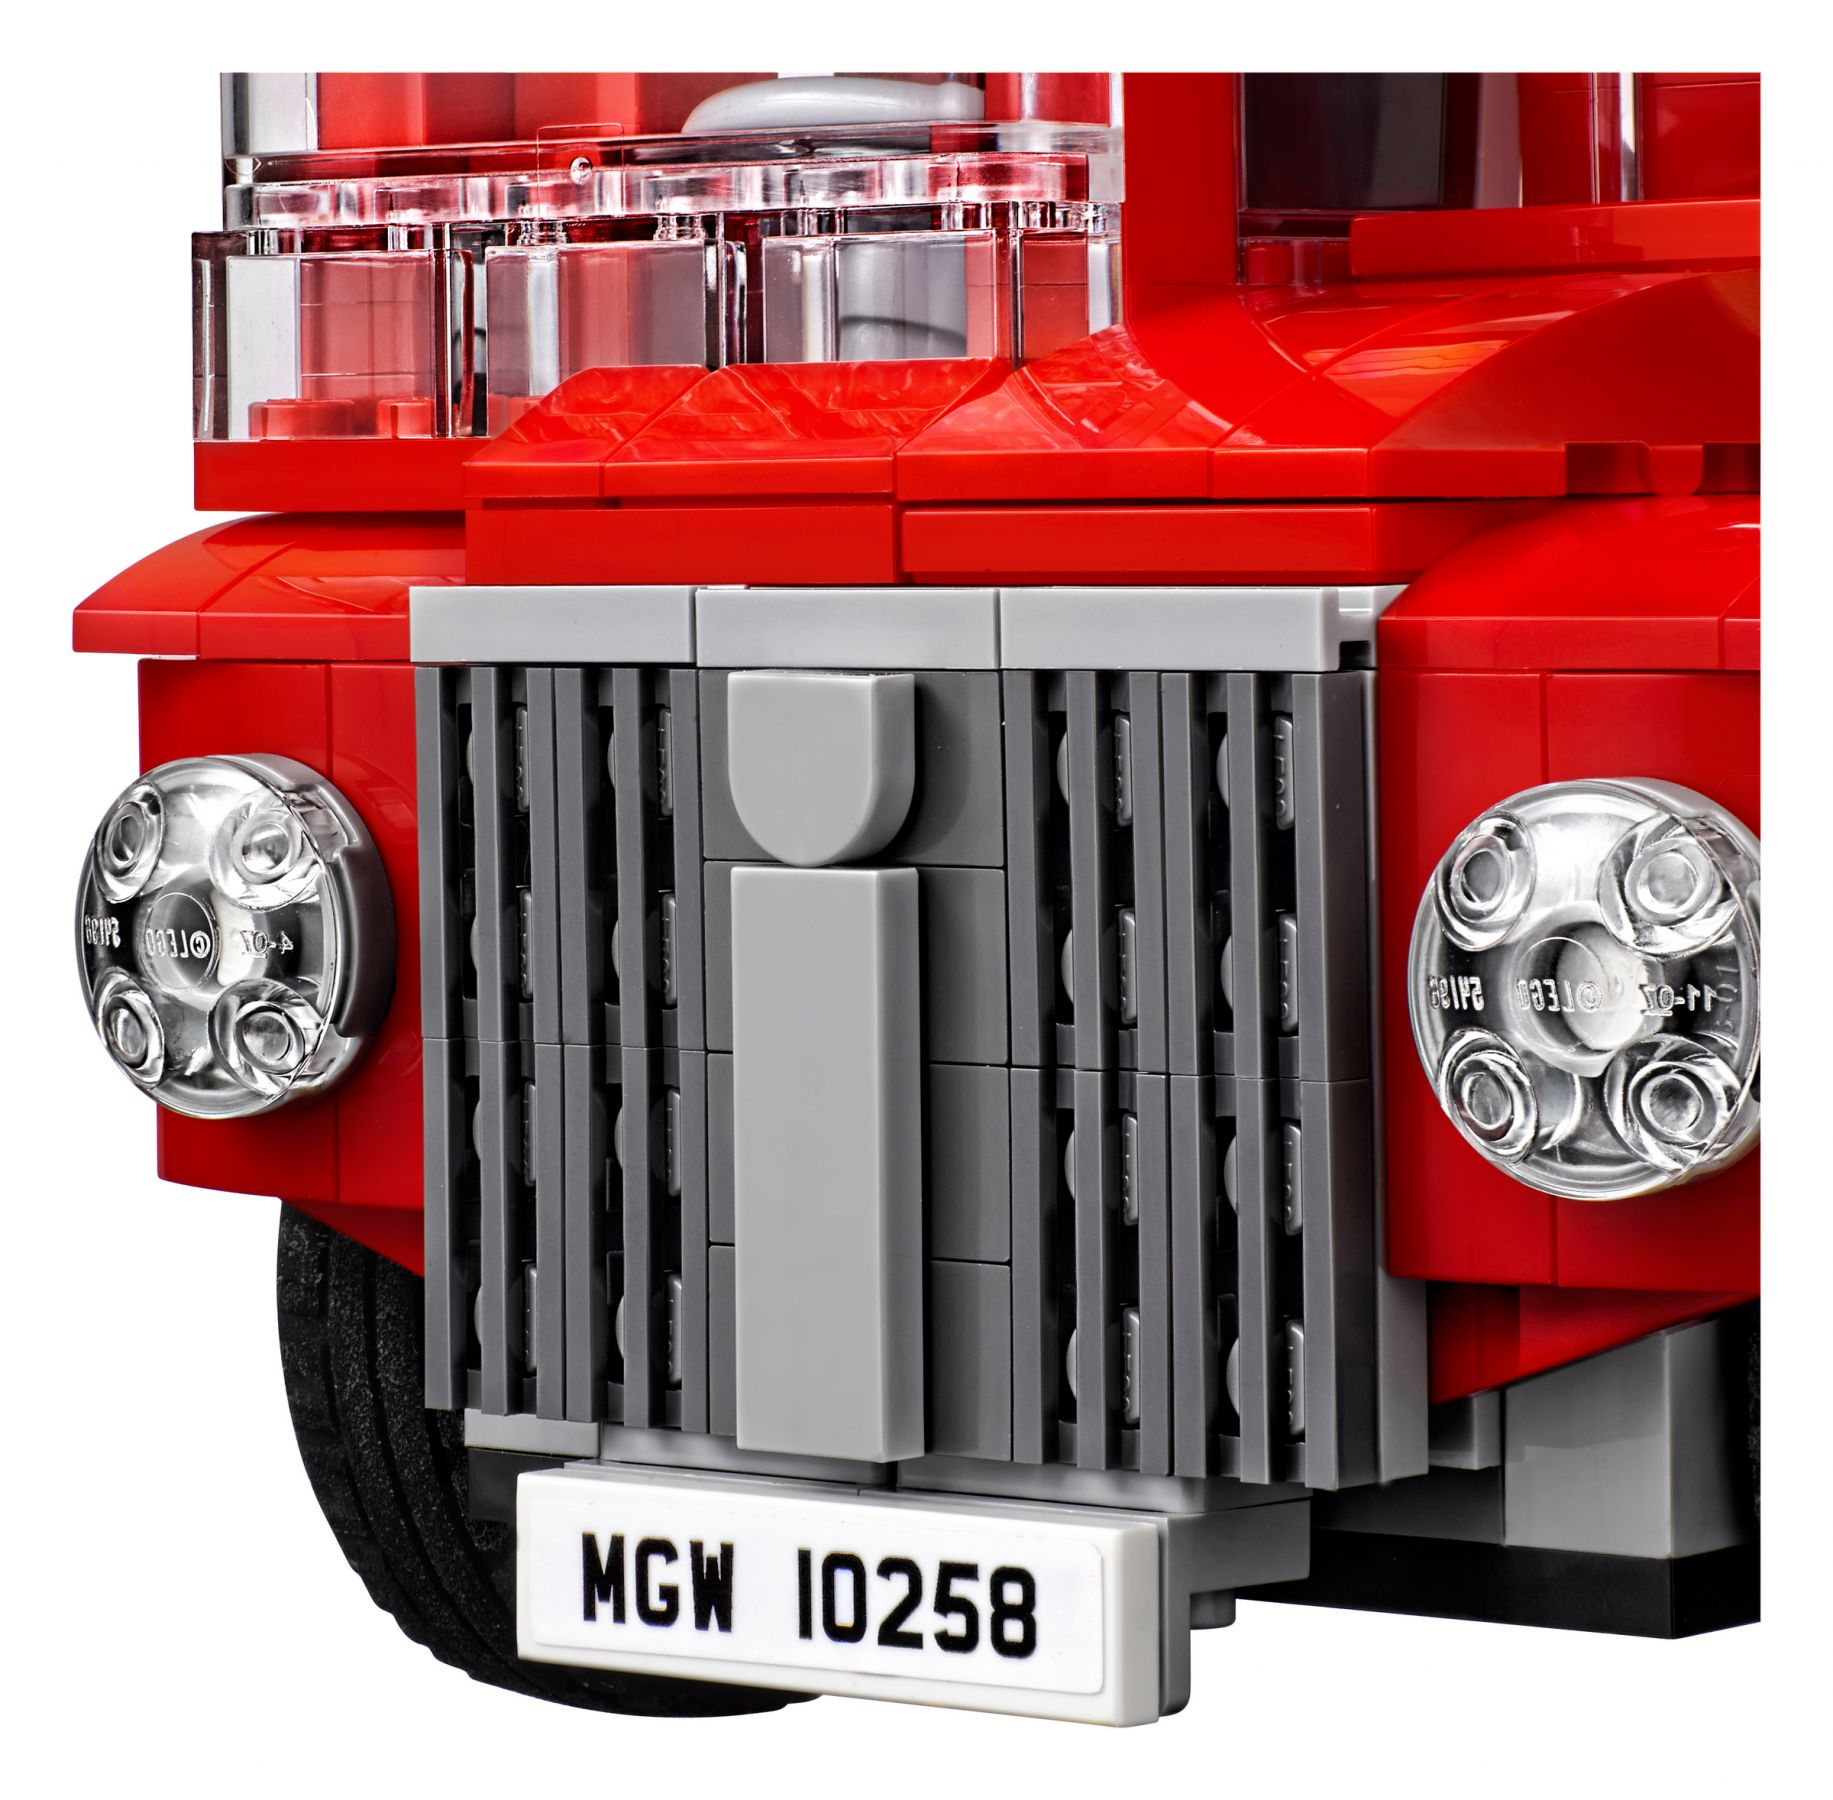 LEGO Advanced Models 10258 Doppeldecker Bus LEGO_10258_alt7.jpg